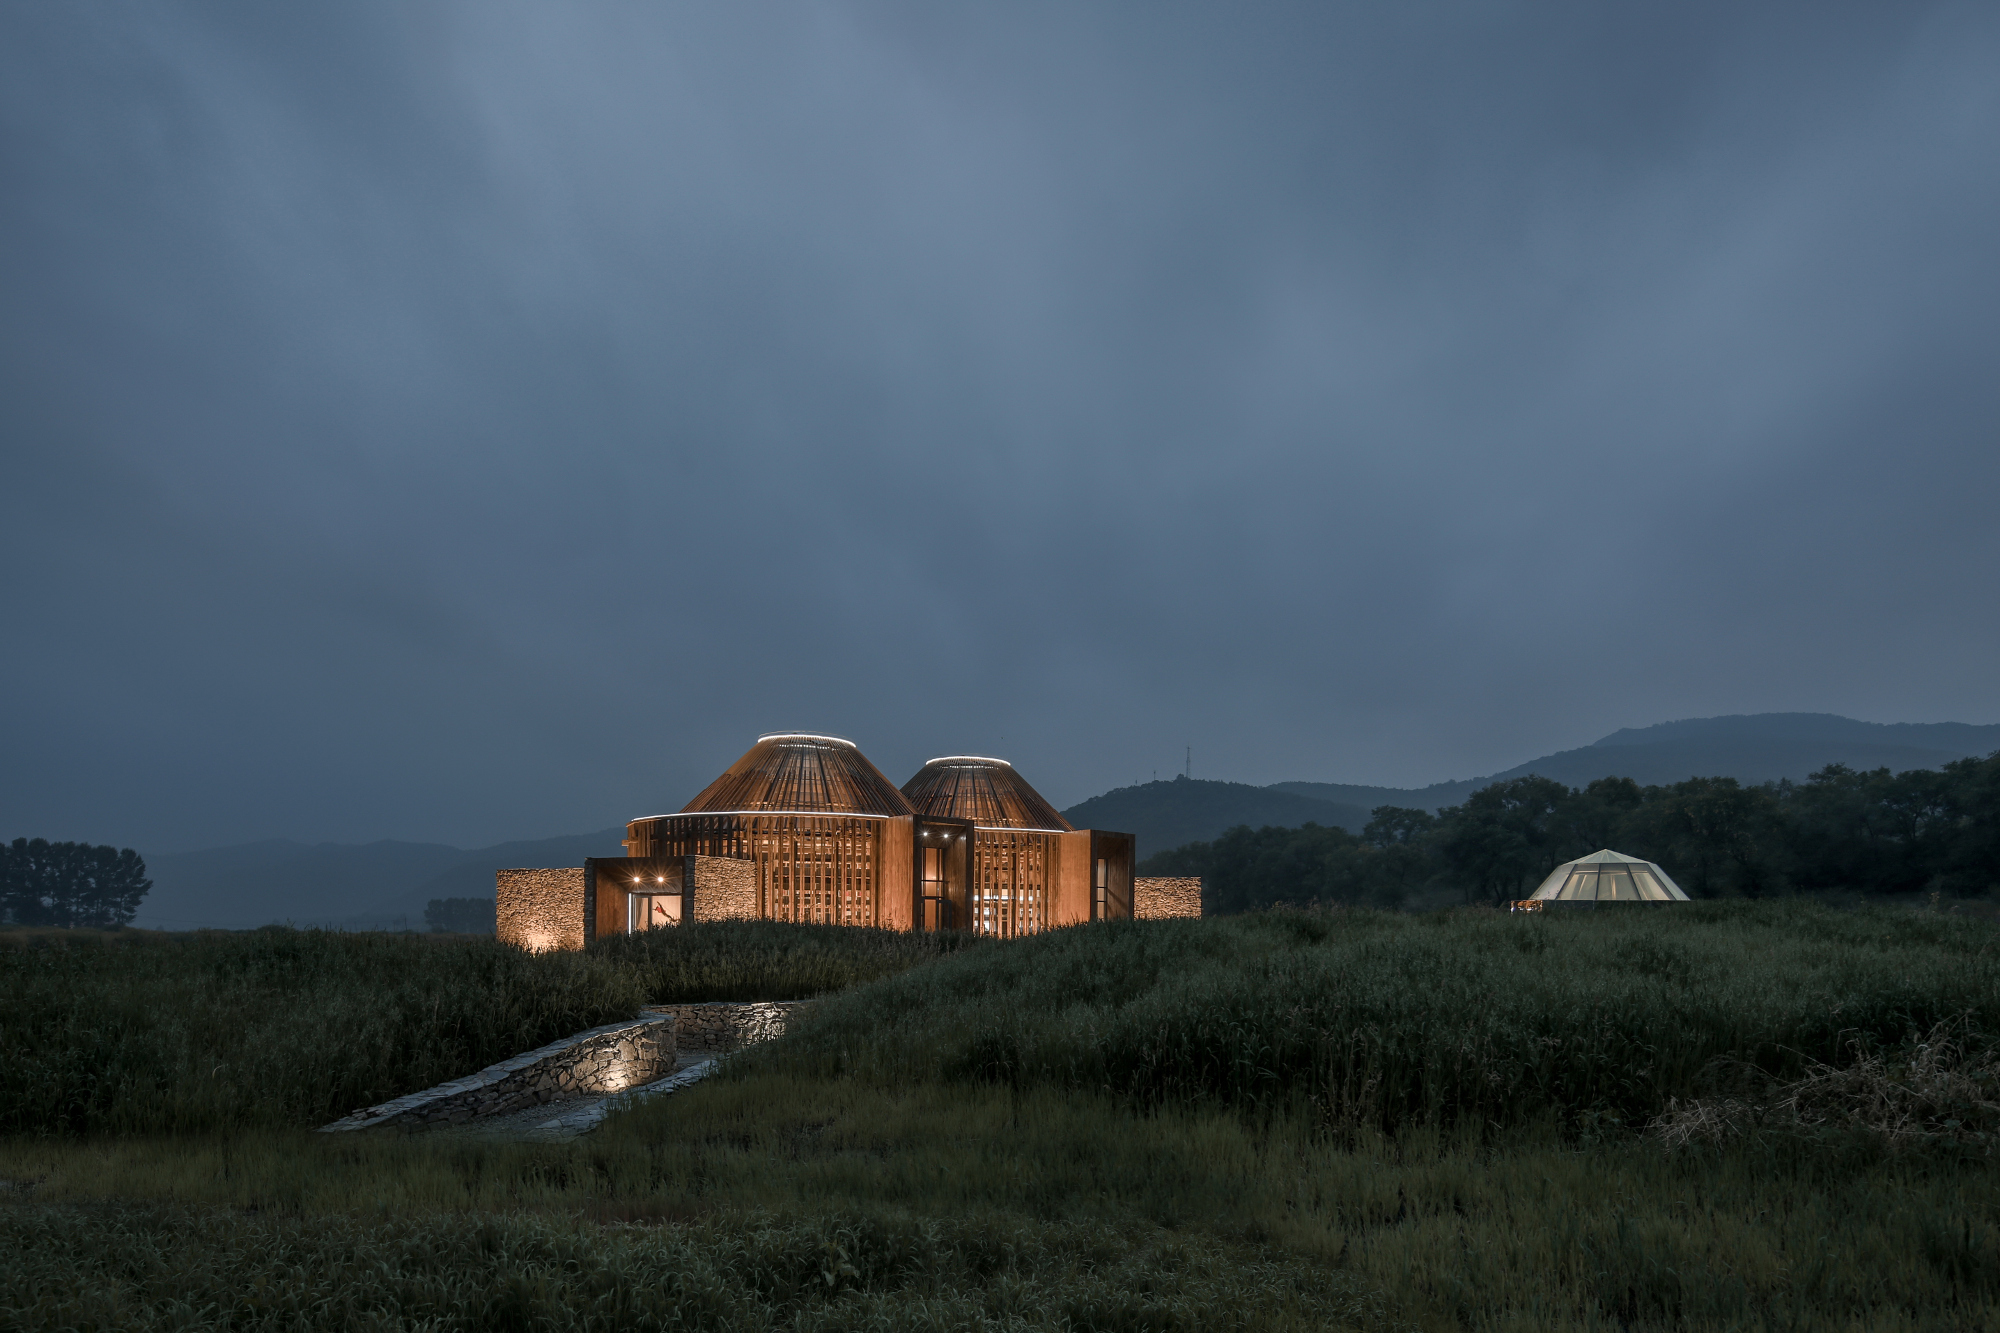 The Mulan Weichang Visitor Centre in Heibei Province.